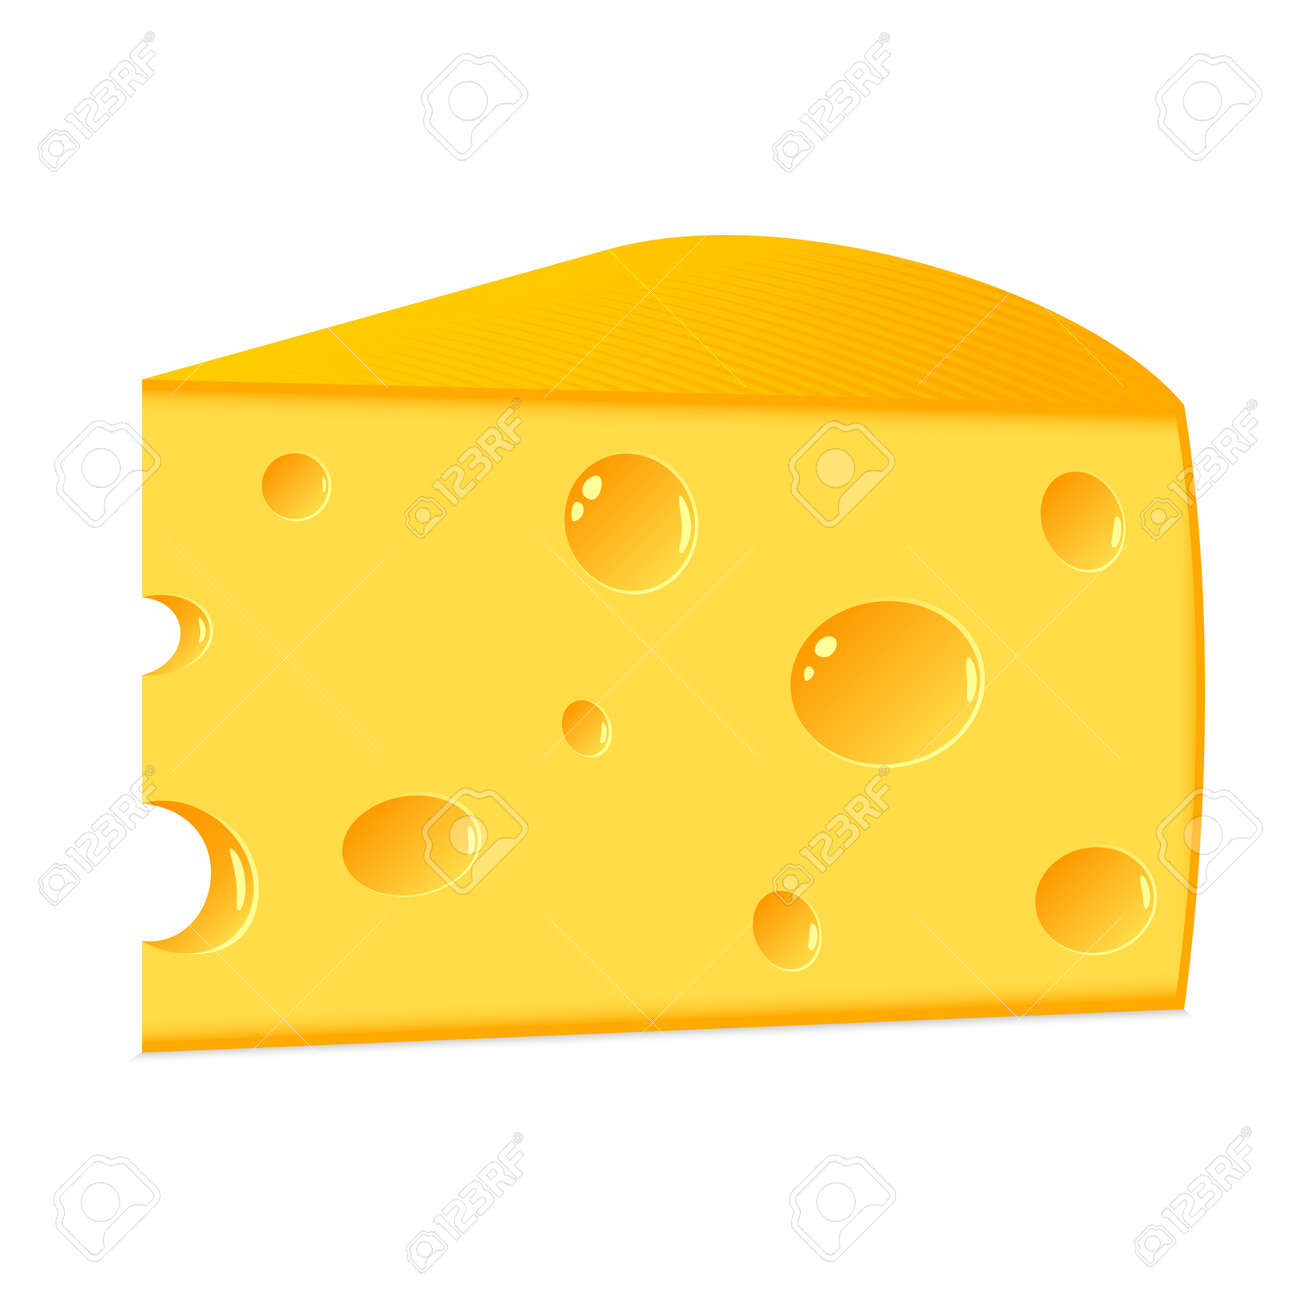 the isolated slice of cheese on a white background royalty free rh 123rf com Cheese Slice Clip Art Black American Cheese Slice Clip Art